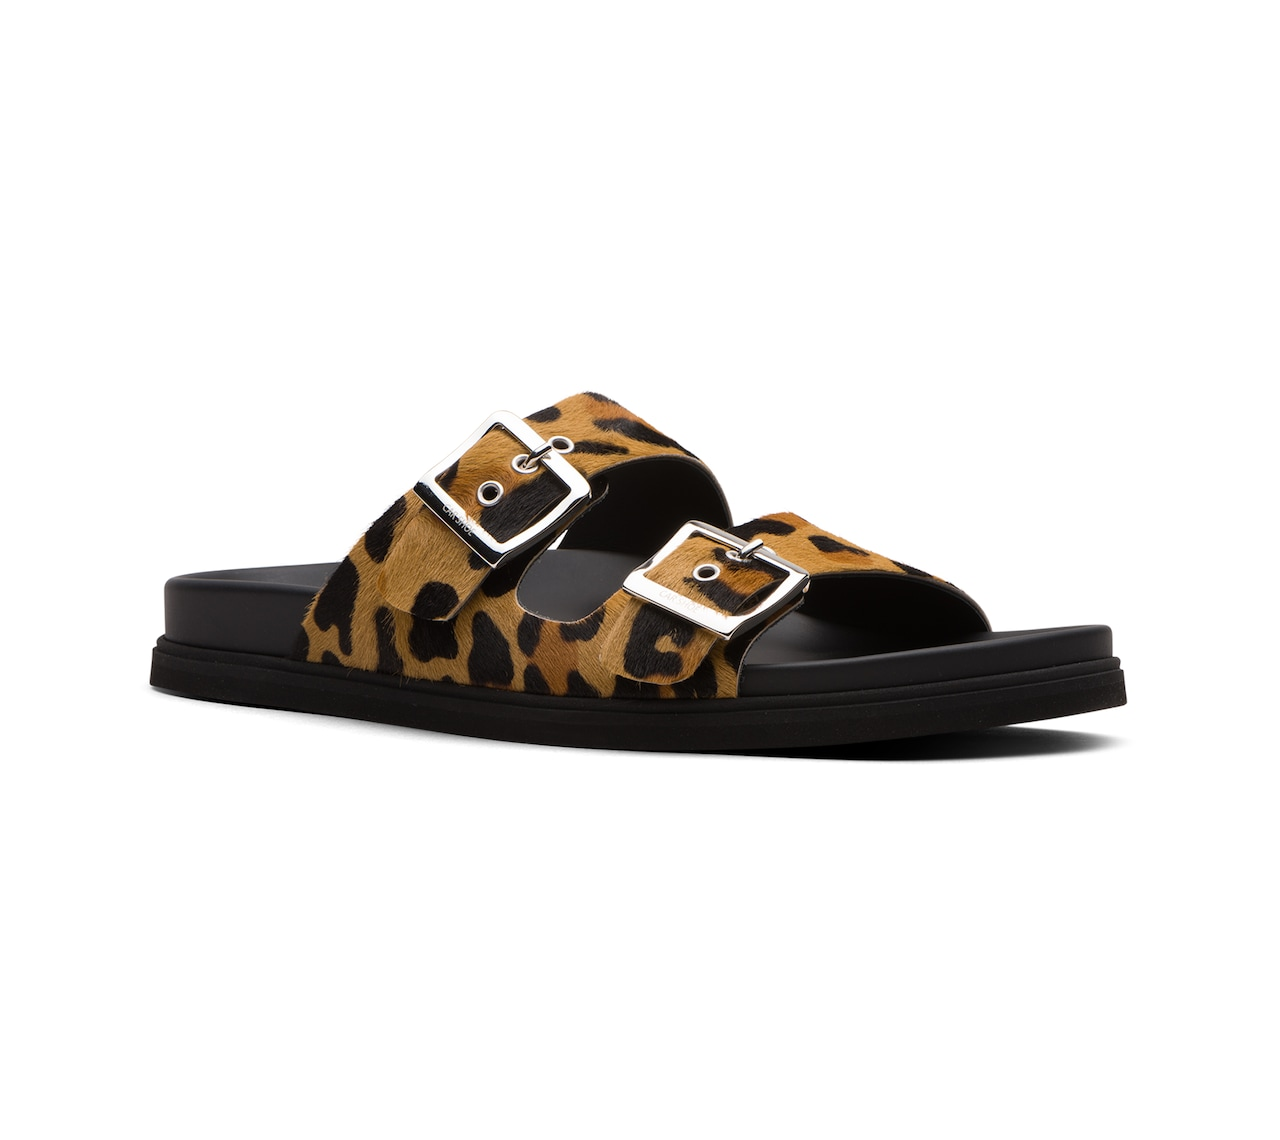 SANDALS LEOPARD PRINT AND LEATHER NEUTRAL